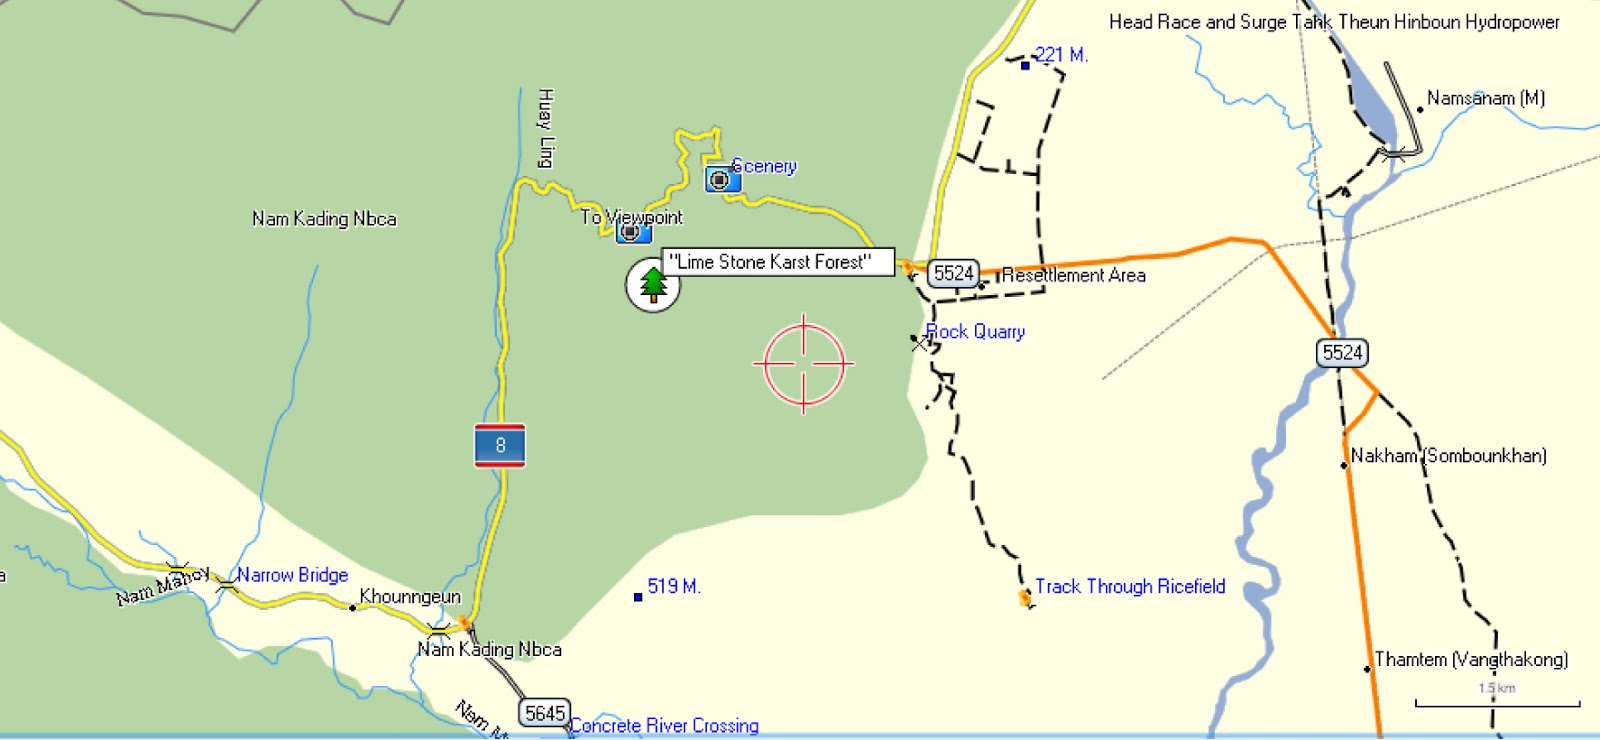 map of the area showing the forest